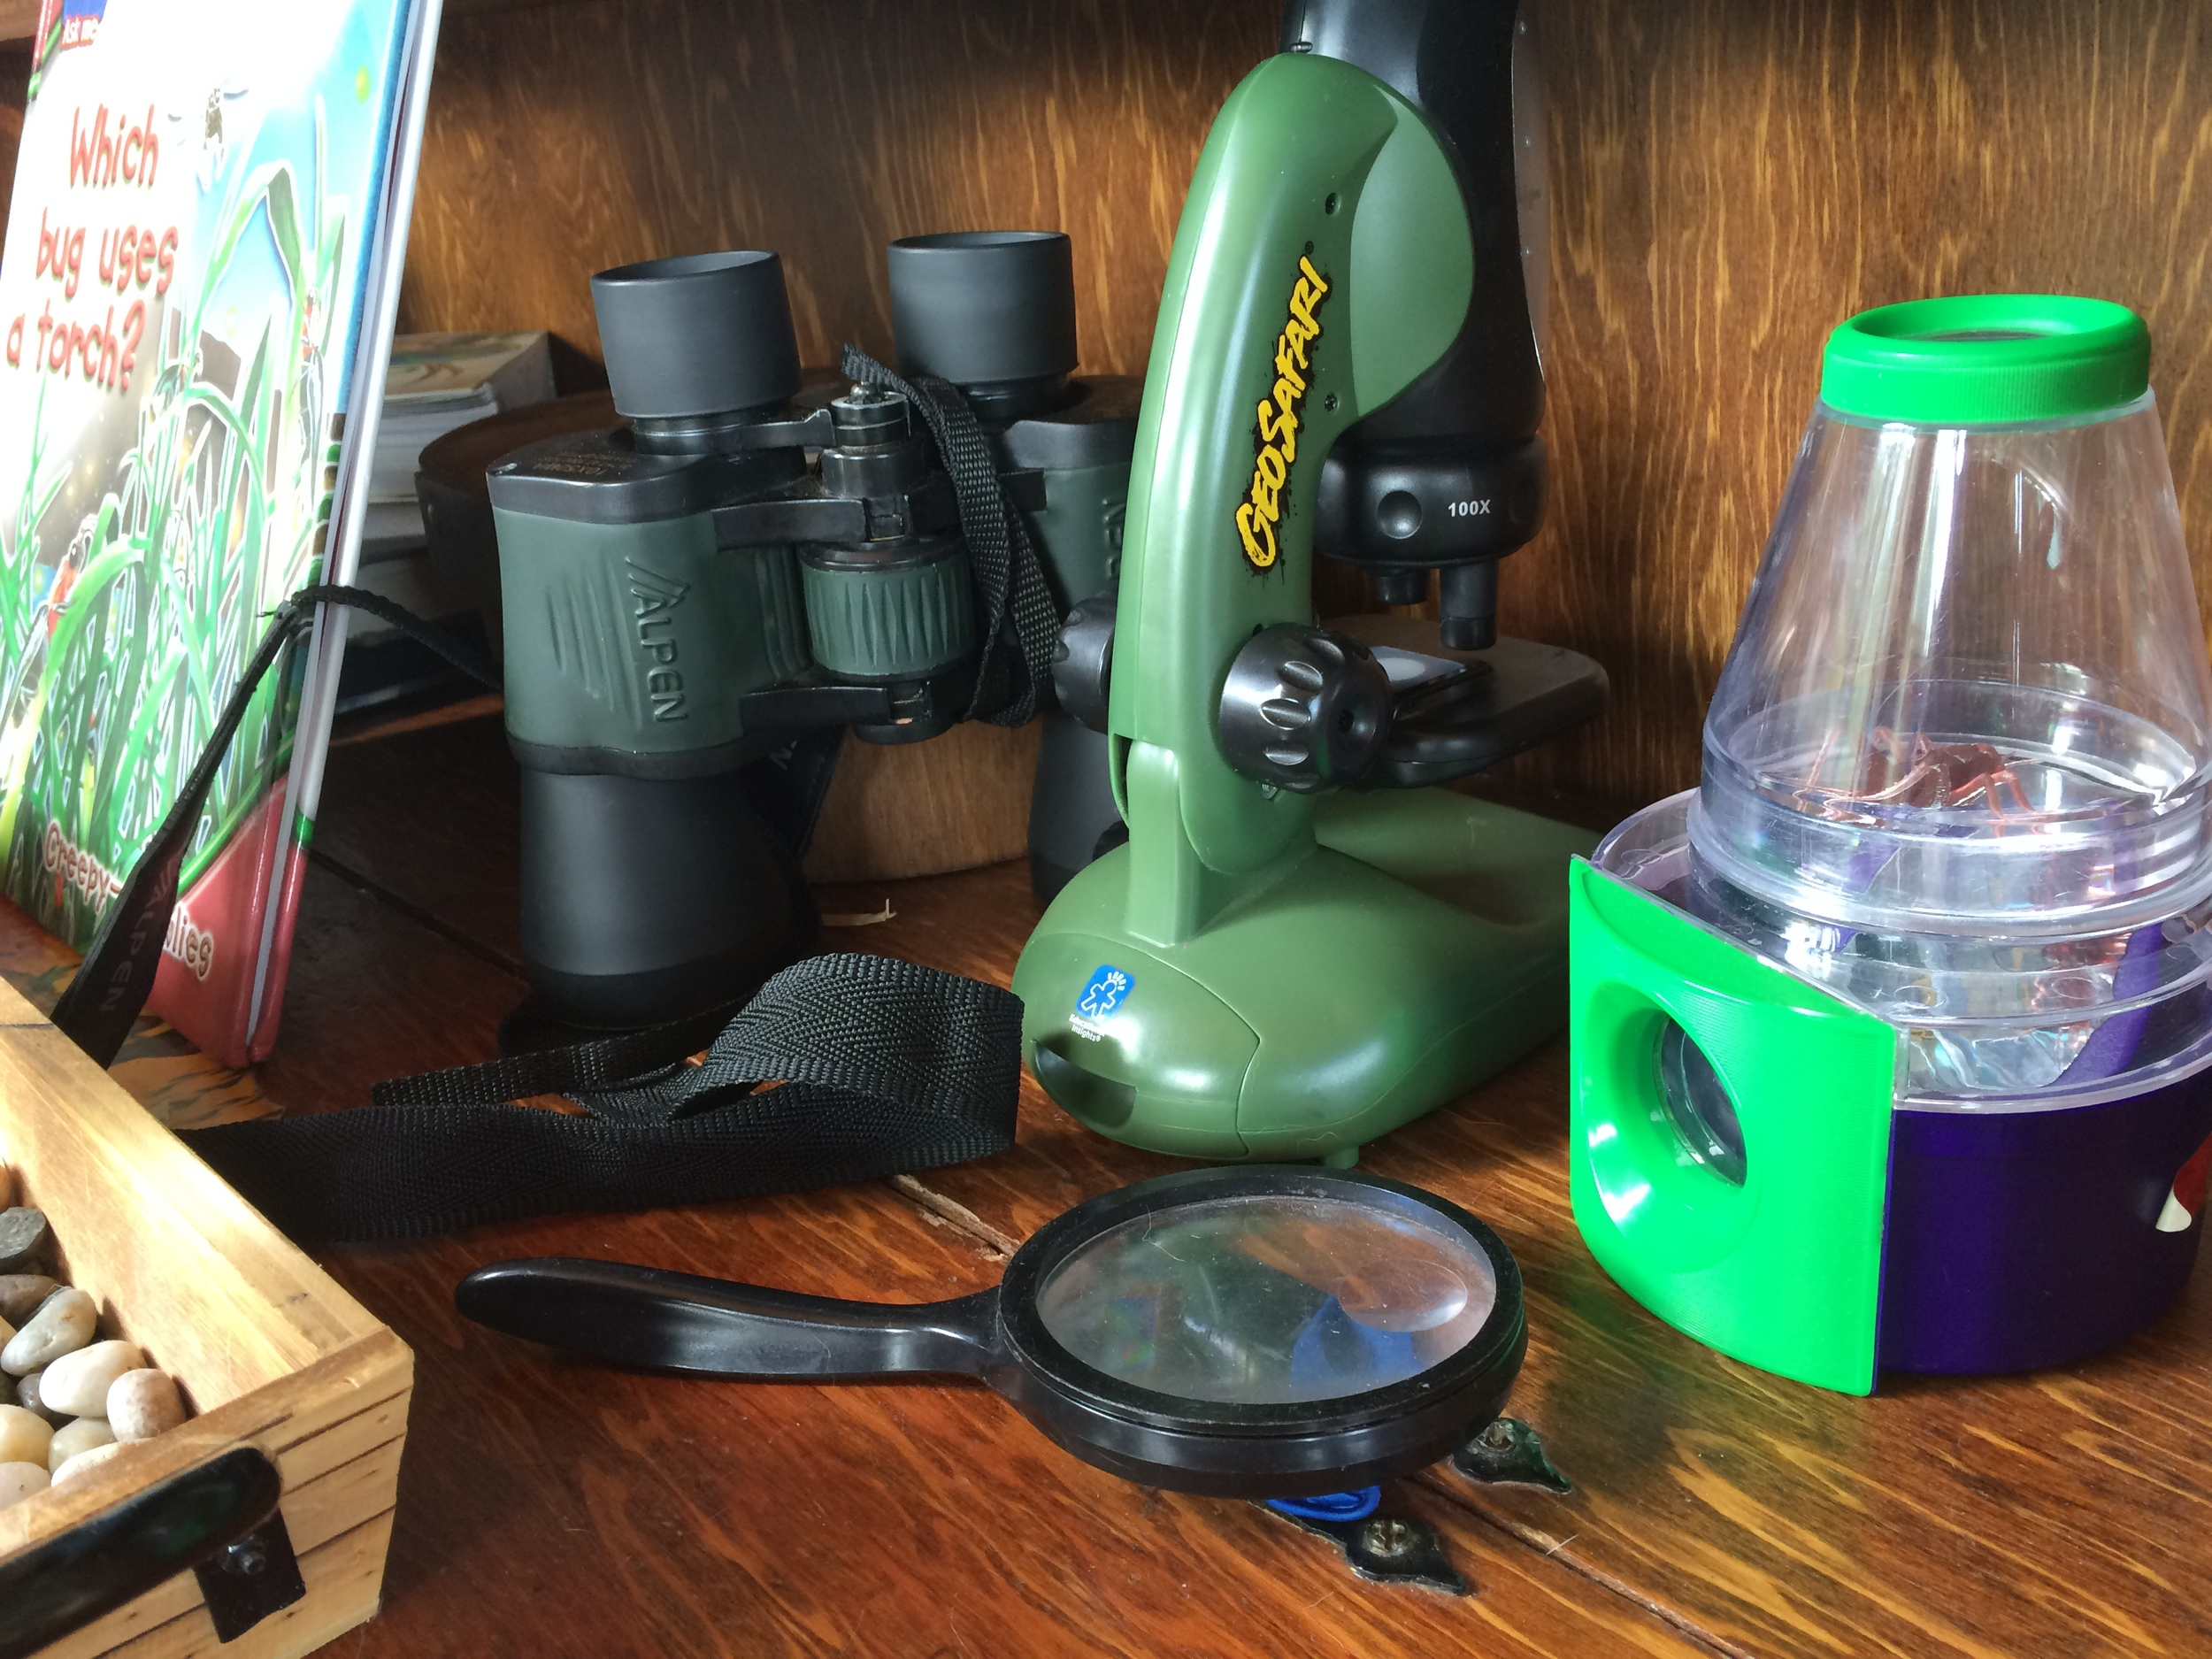 Make room for treasures from nature walks (a box of sticks, a bowl of rocks), field guides, binoculars, a bug net, etc. to encourage budding scientists.